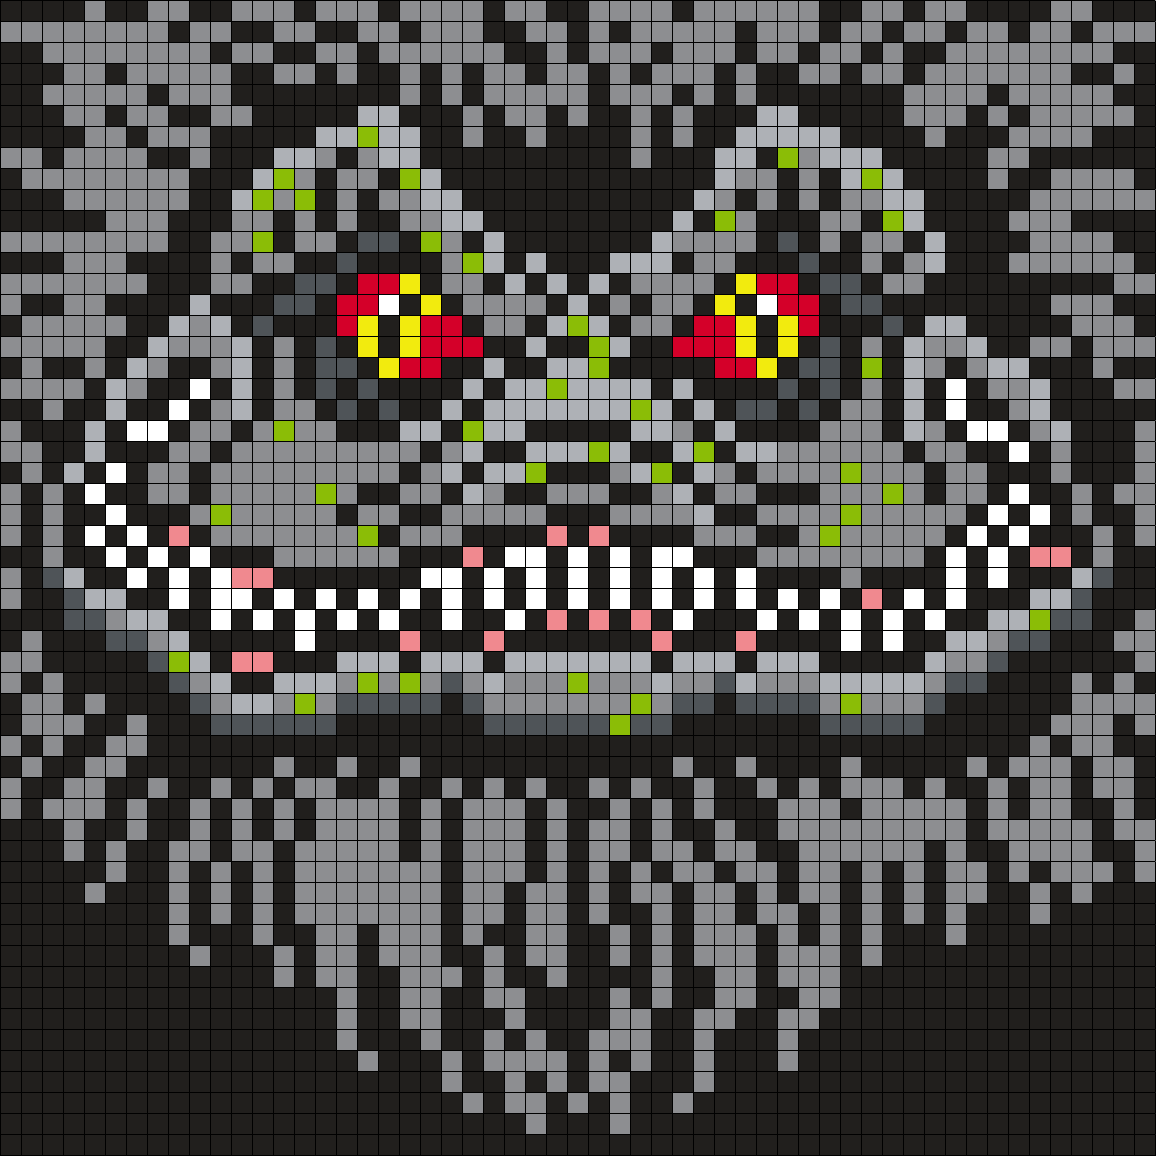 Critters Poster (Square)